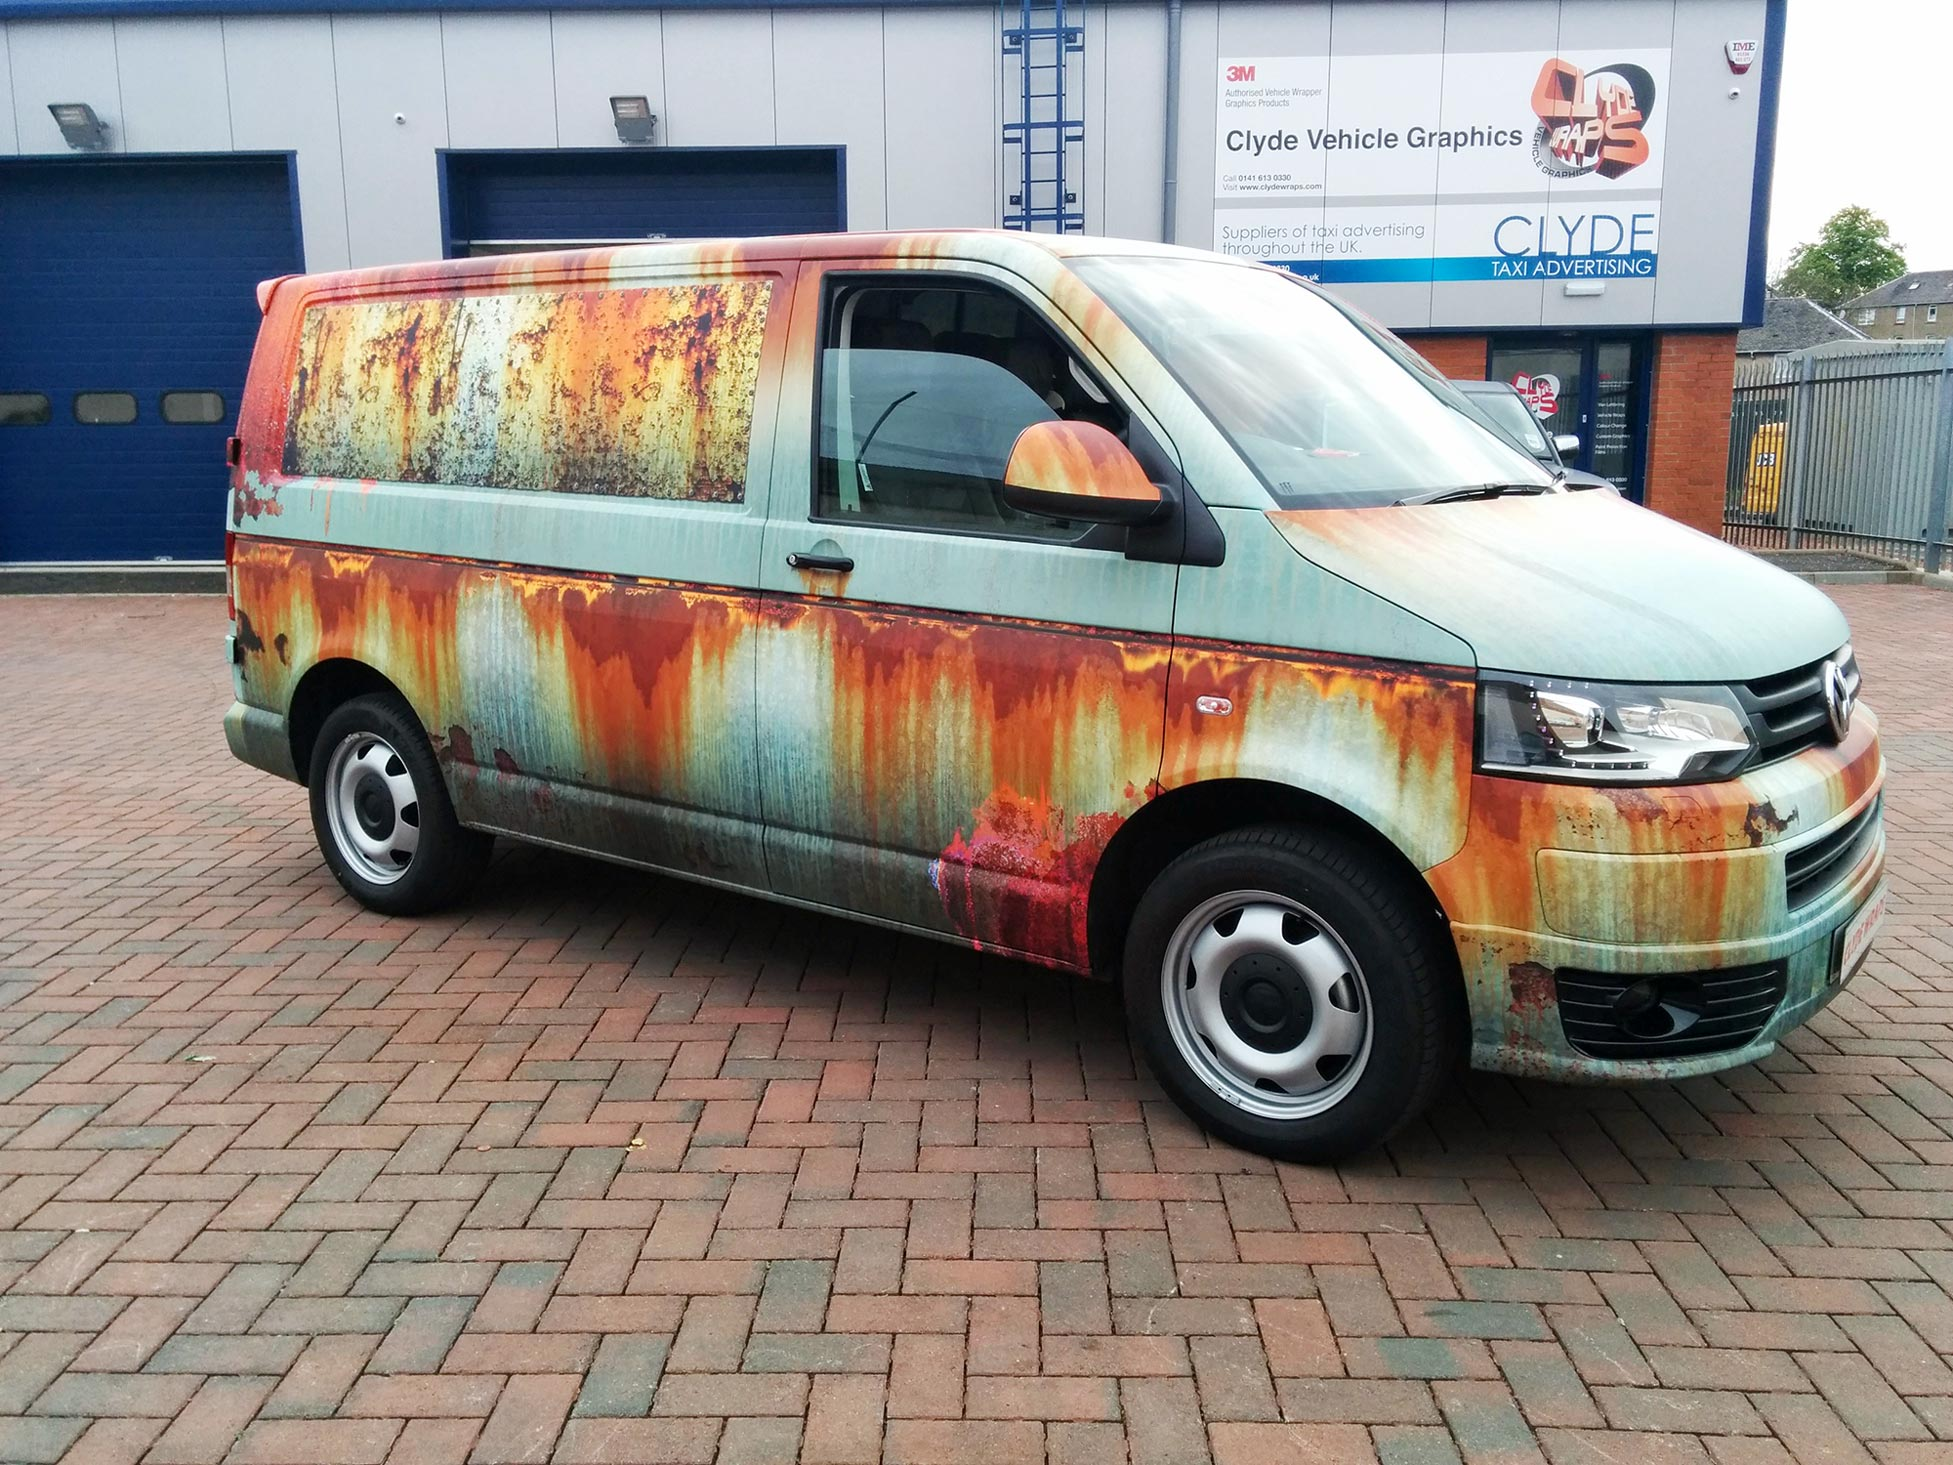 VW T5 Sportline With Unique Photorealistic 'Rusted' Rat-Rod Look Graphics